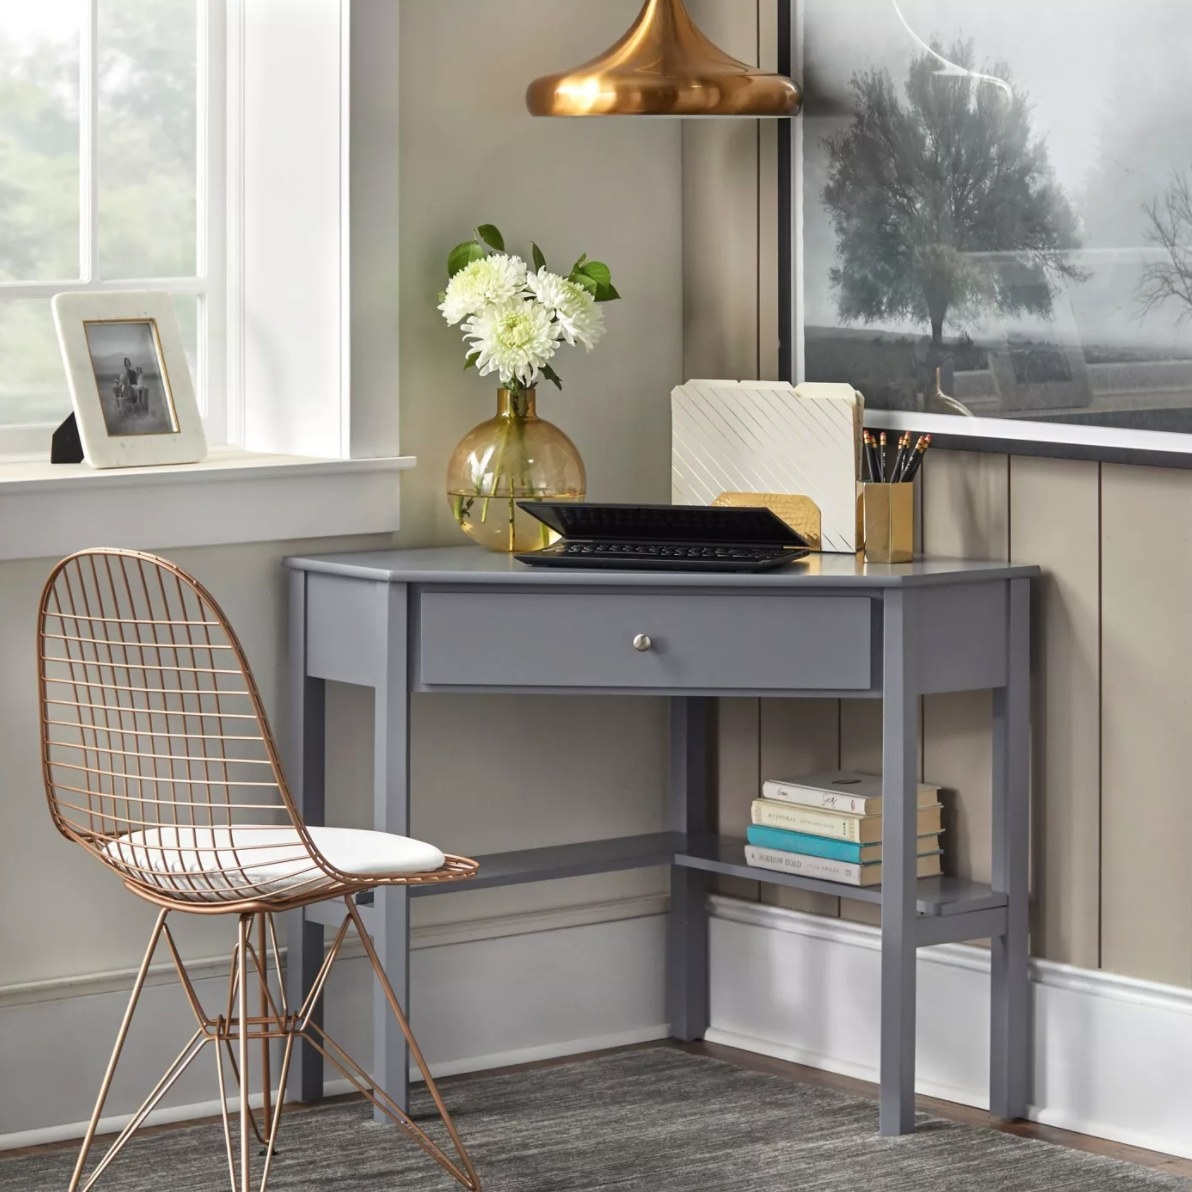 The corner desk in gray holding a laptop, vase, and cup of pencils